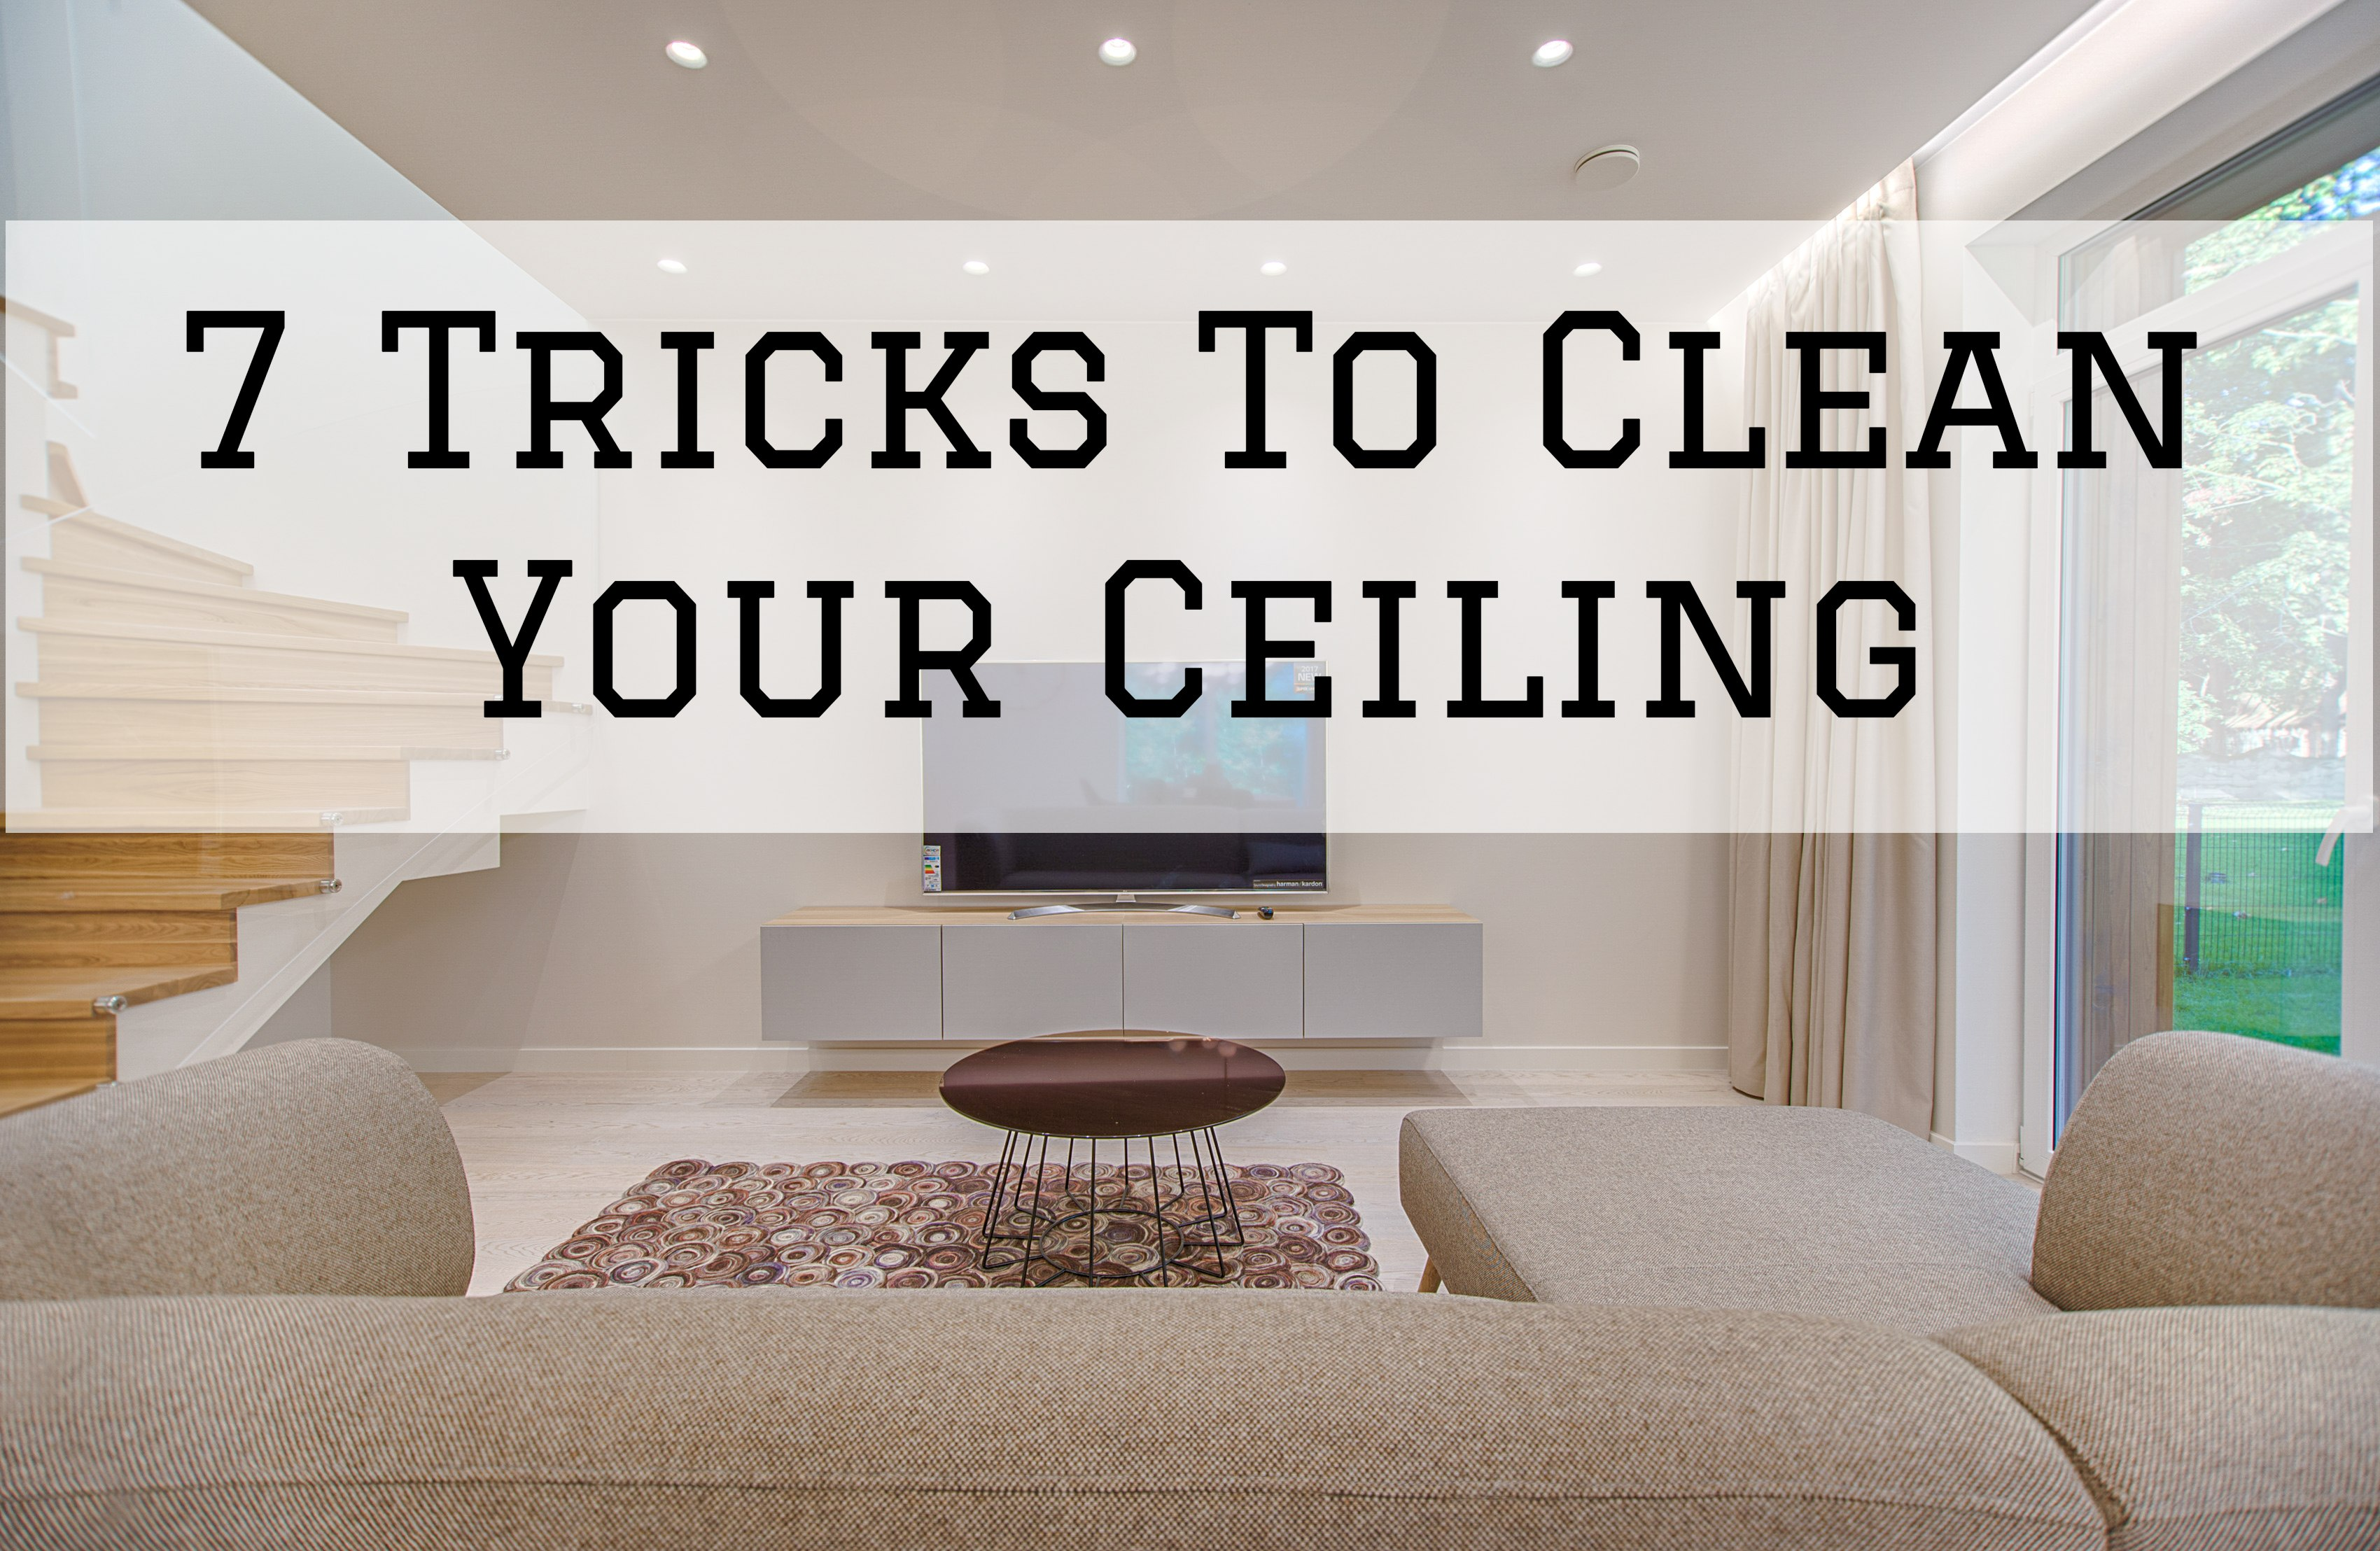 7 Tricks To Clean Your Ceiling in Omaha, NE